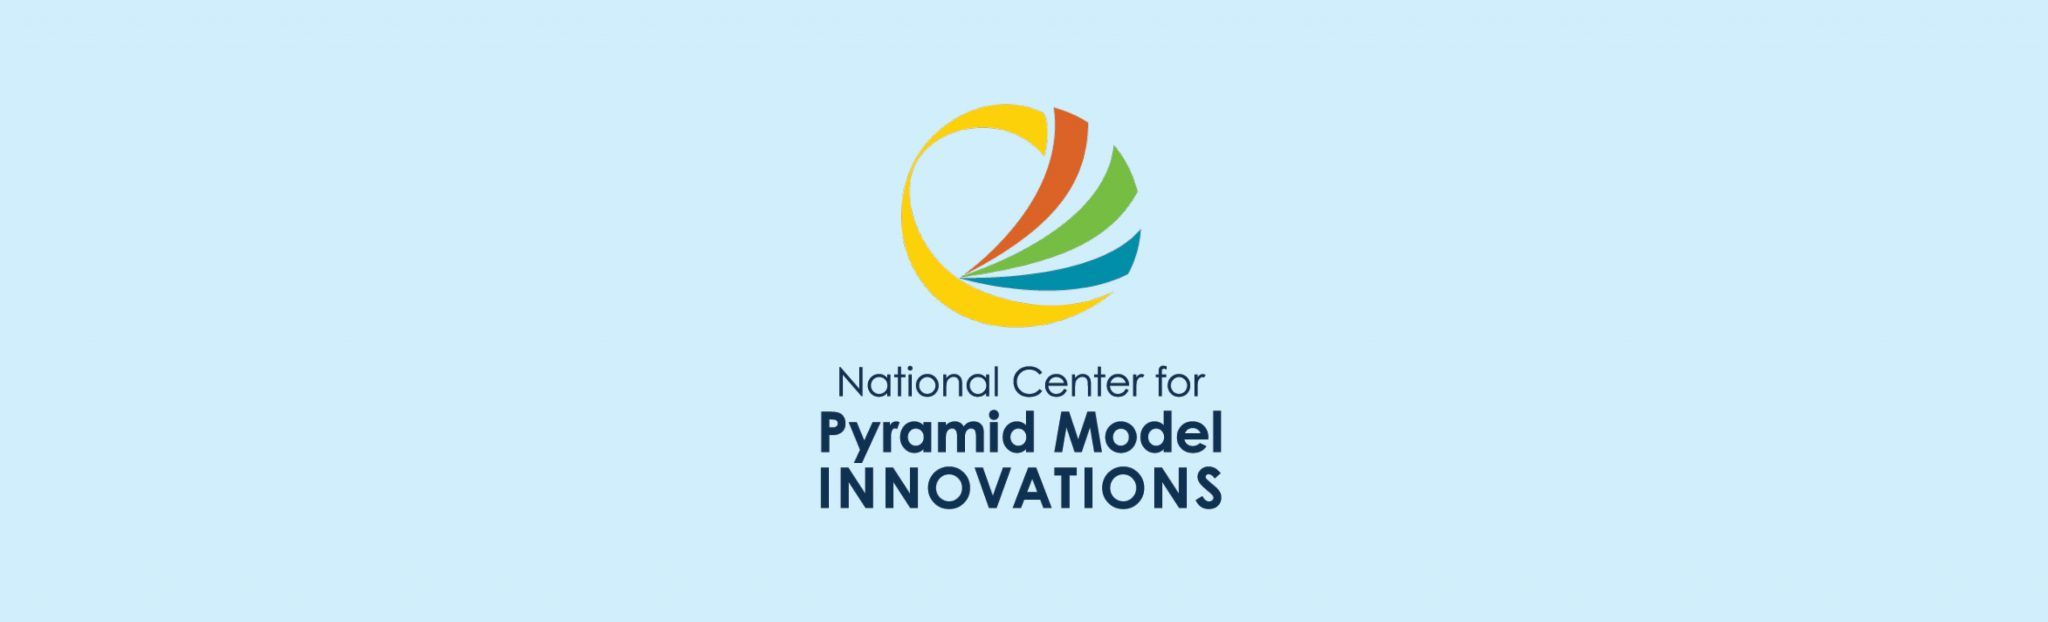 National Center for Pyramid Model Innovations